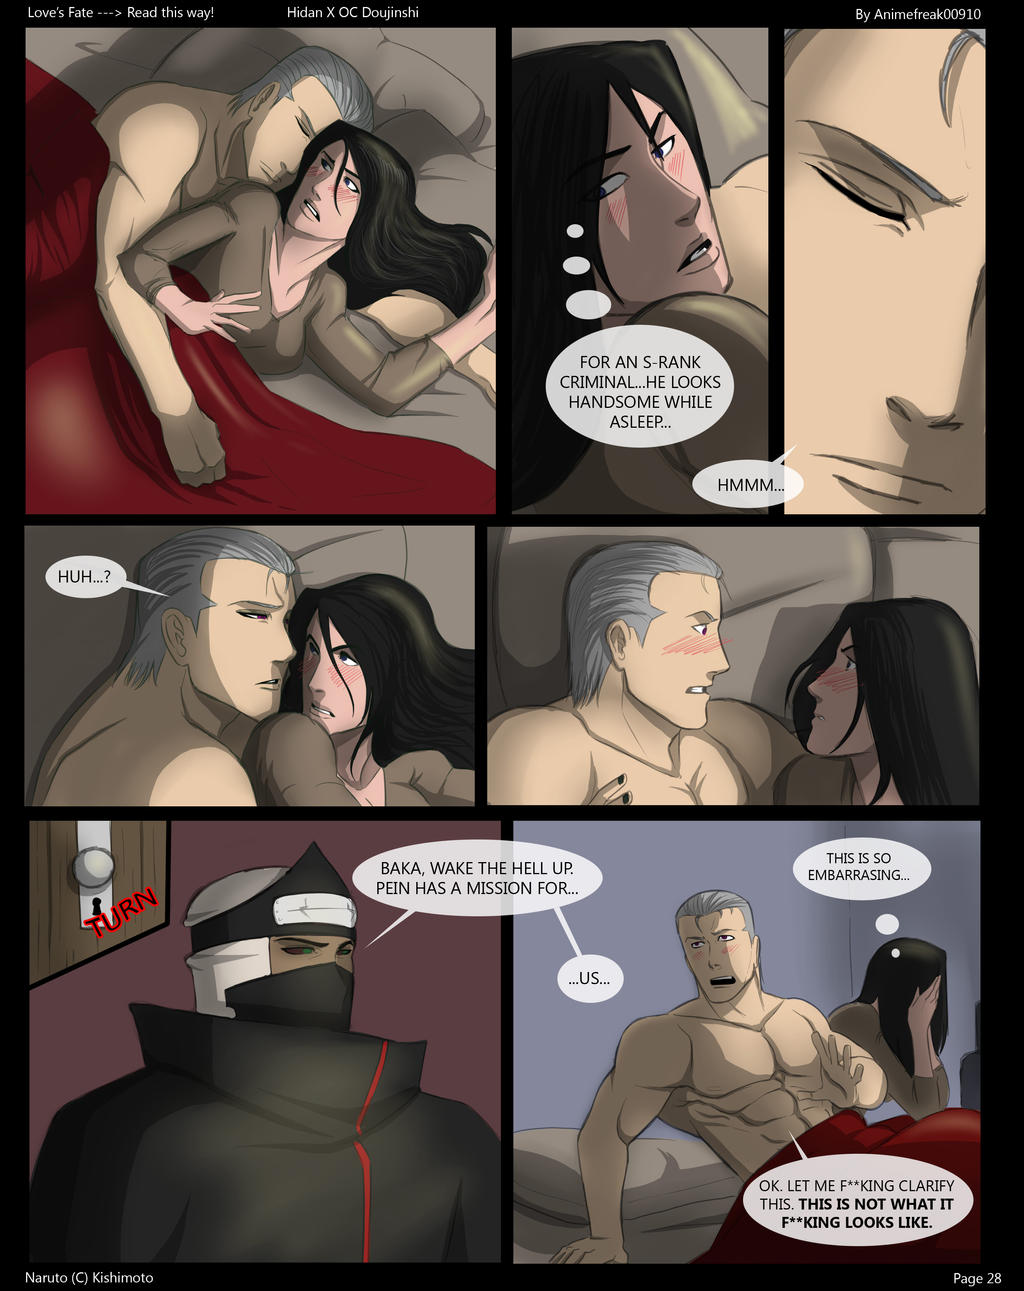 Love's Fate Hidan Pg 28 by S-Kinnaly